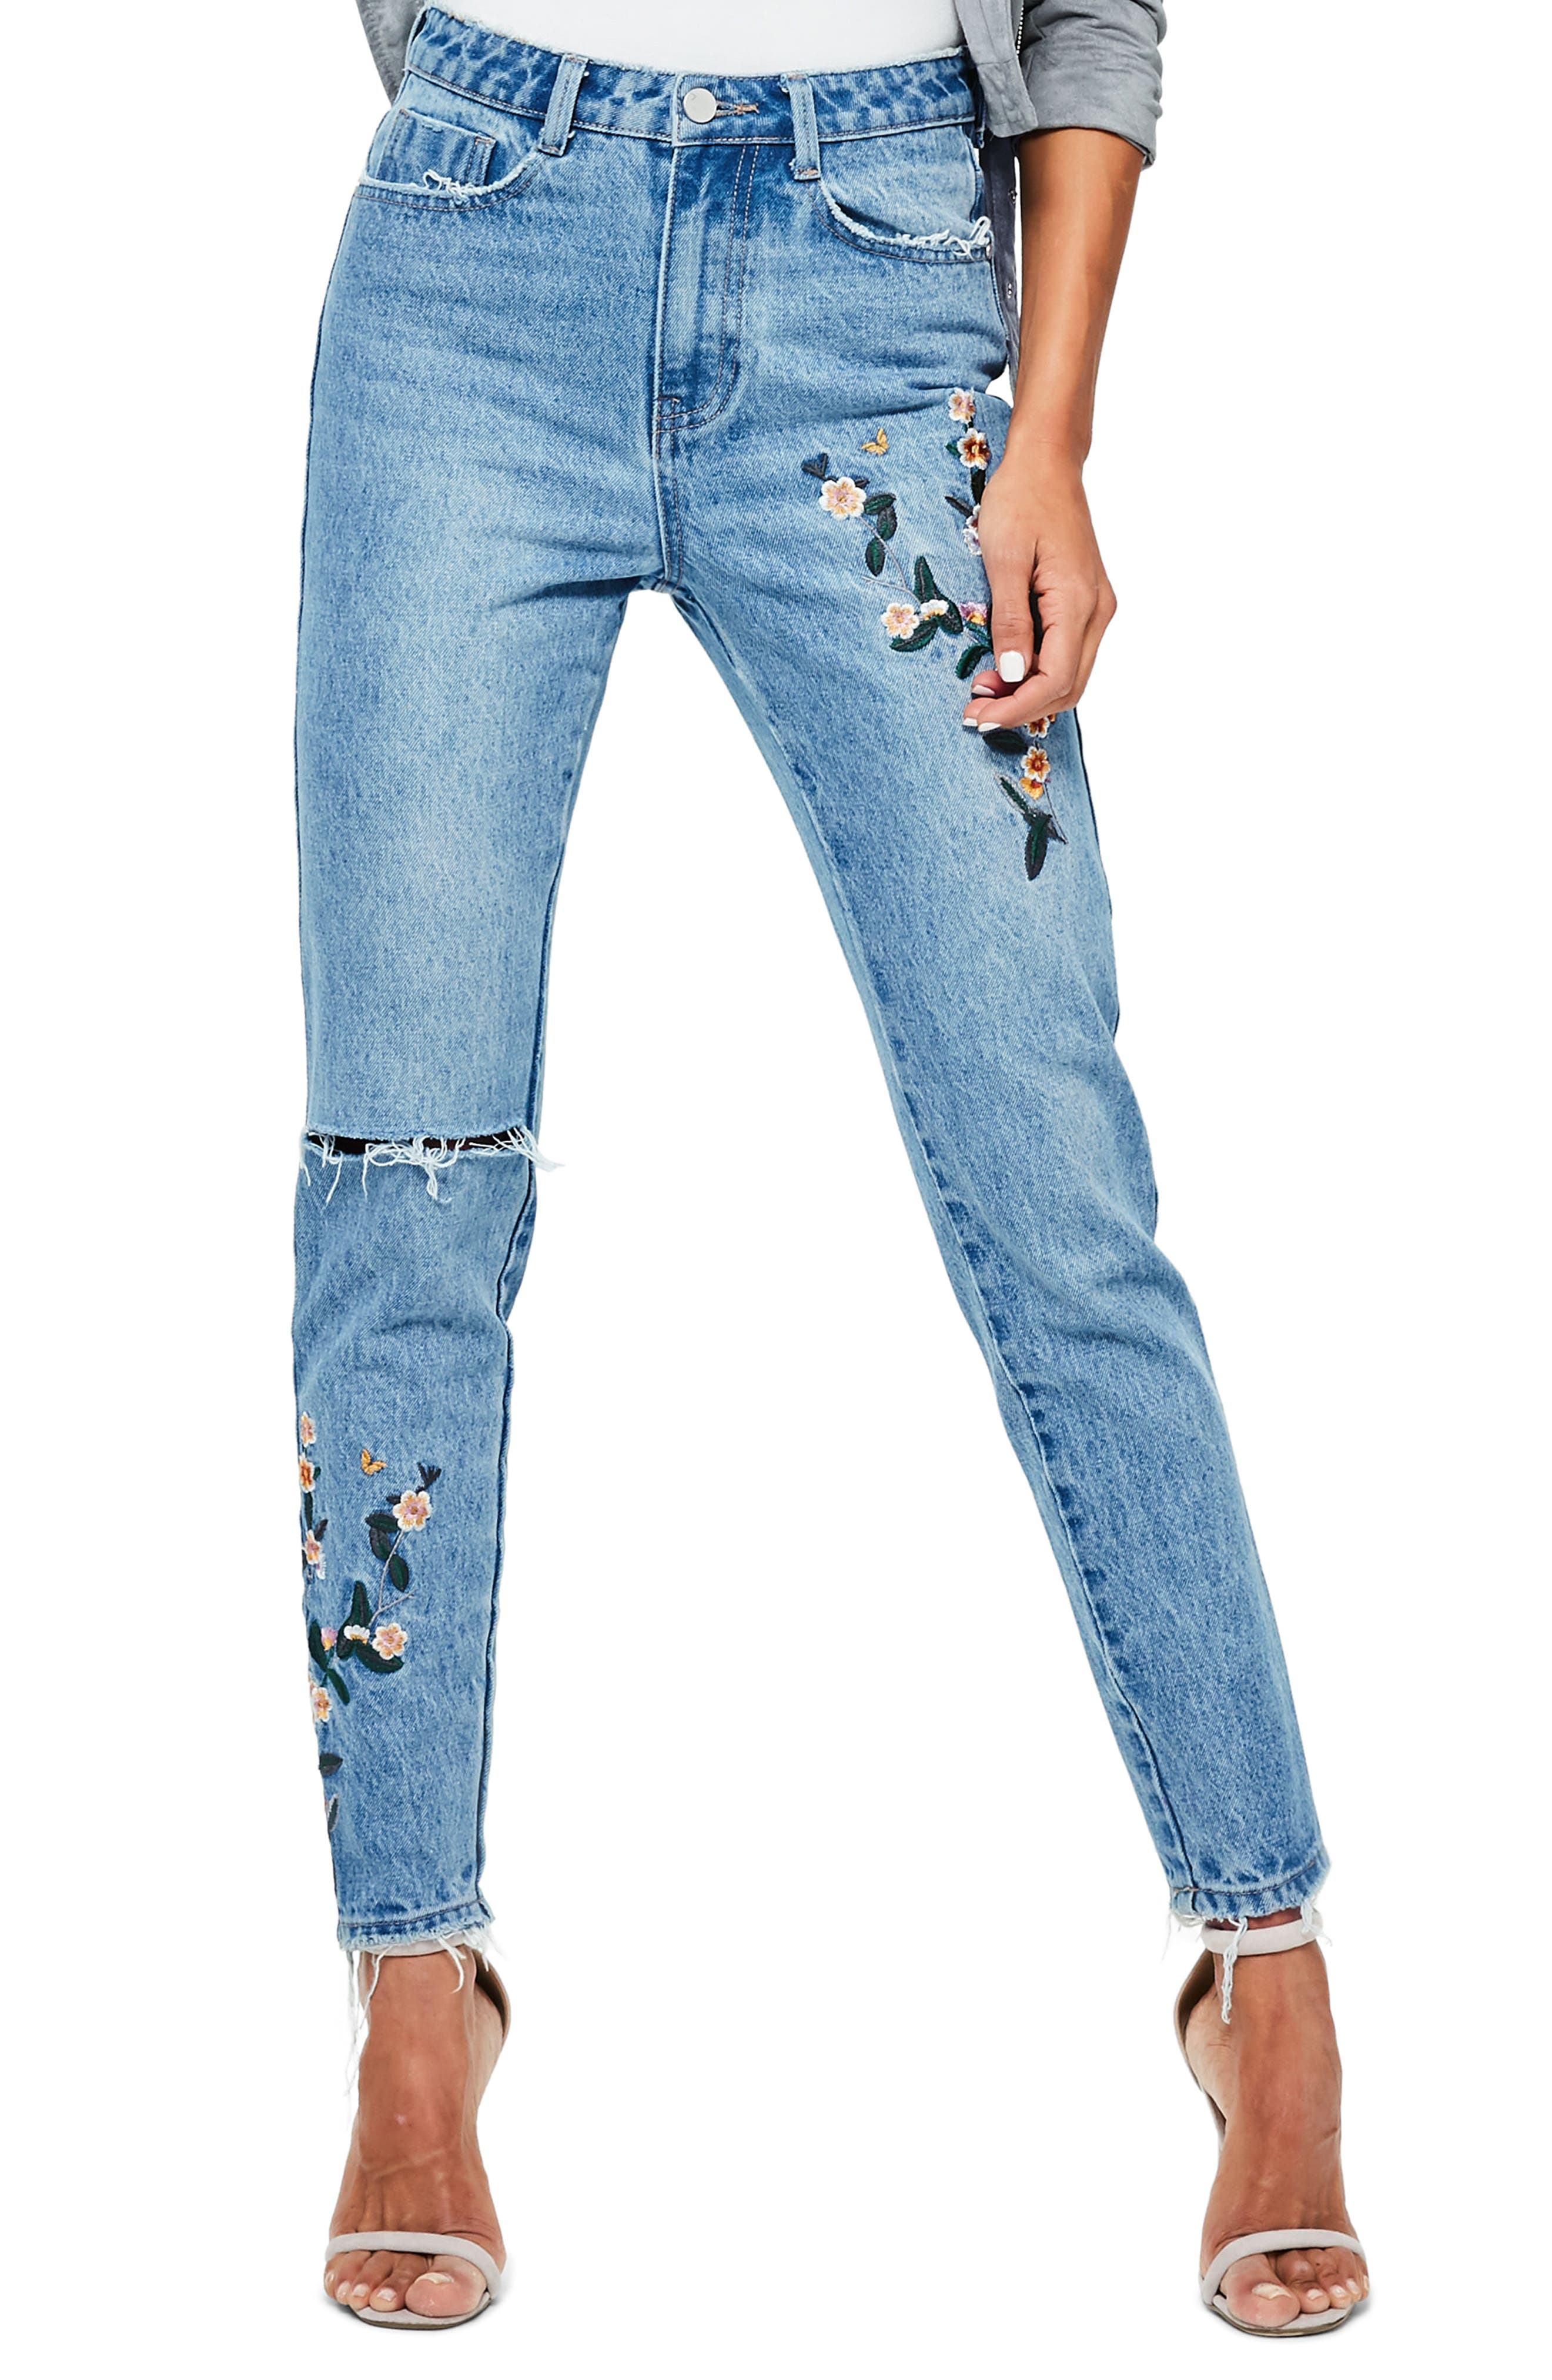 Riot Ripped High Waist Embroidered Jeans,                         Main,                         color, Blue